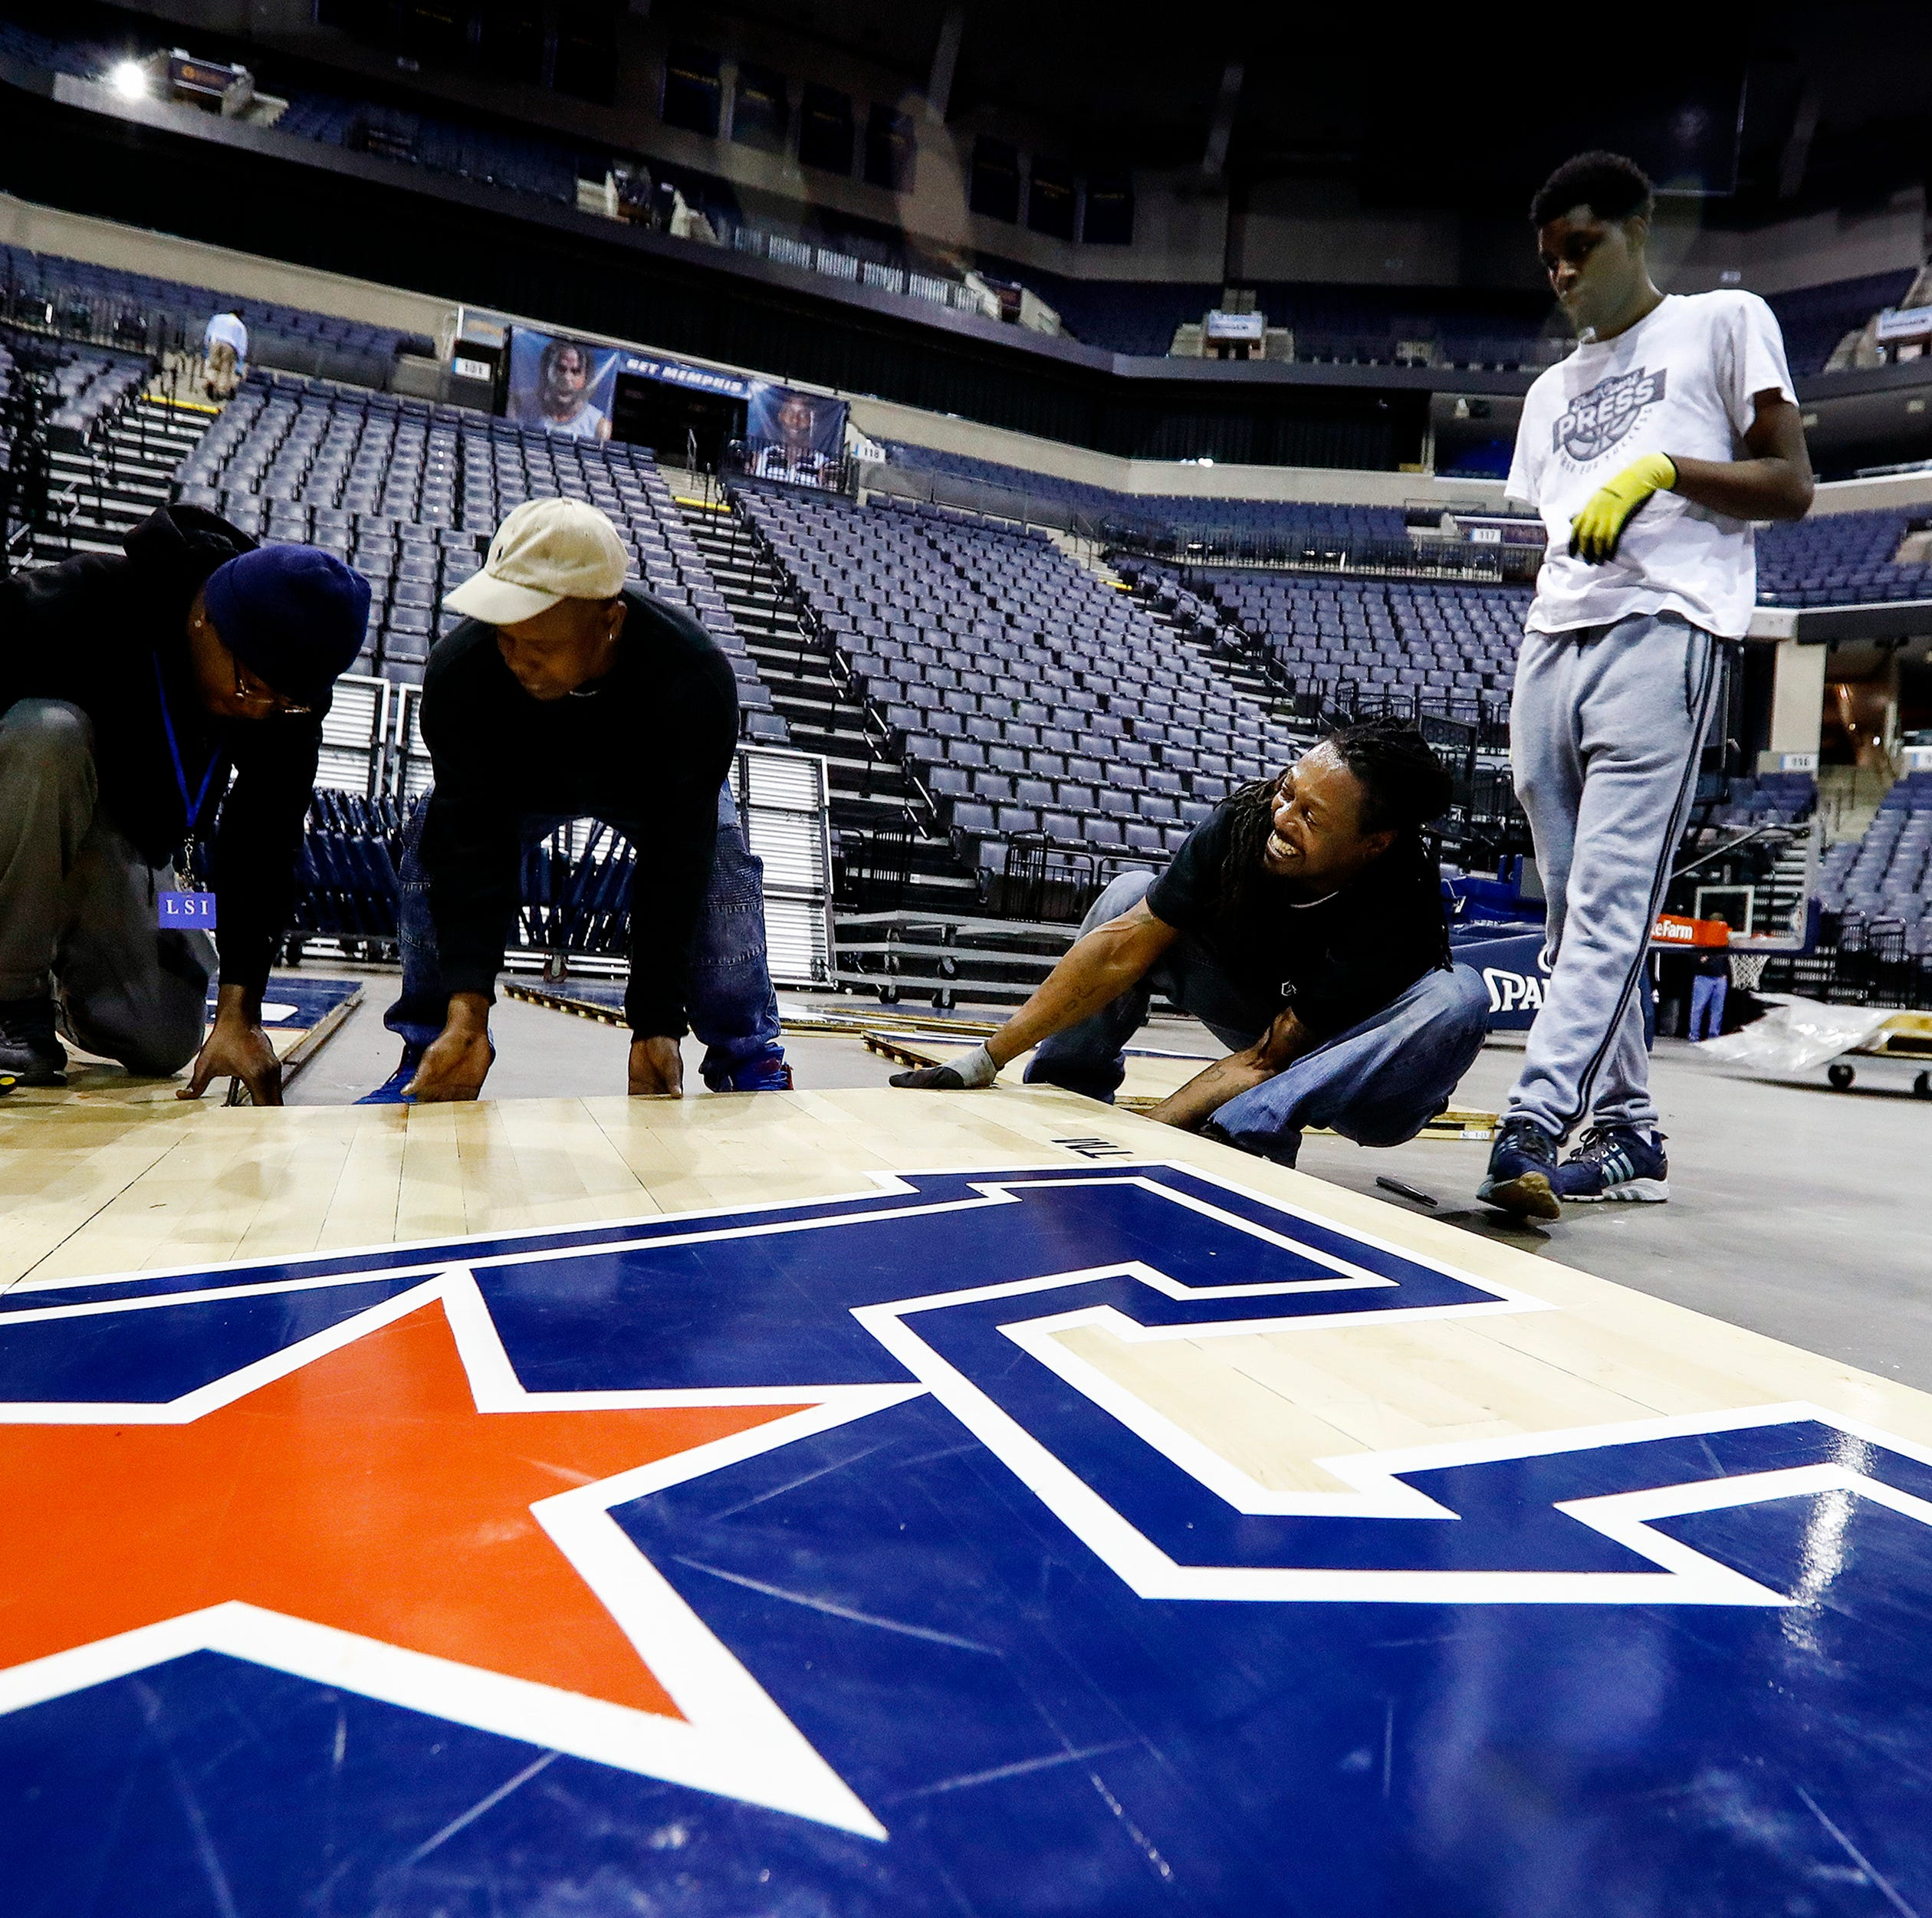 Evanoff: FedExForum hosts first AAC tourney since 2014; games could help ease tourism lull